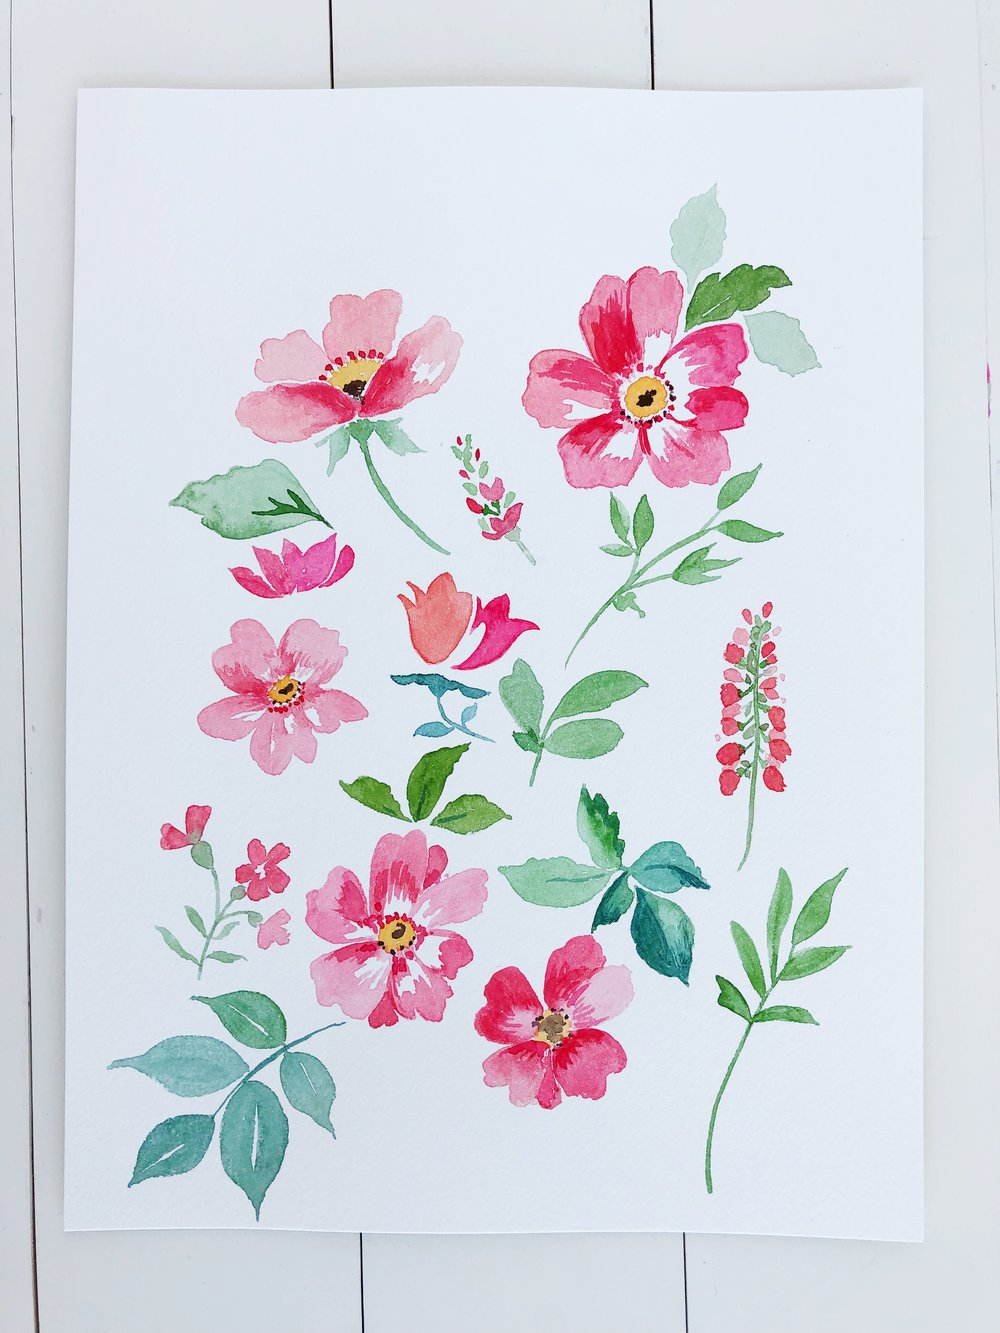 Watercolor flower elements